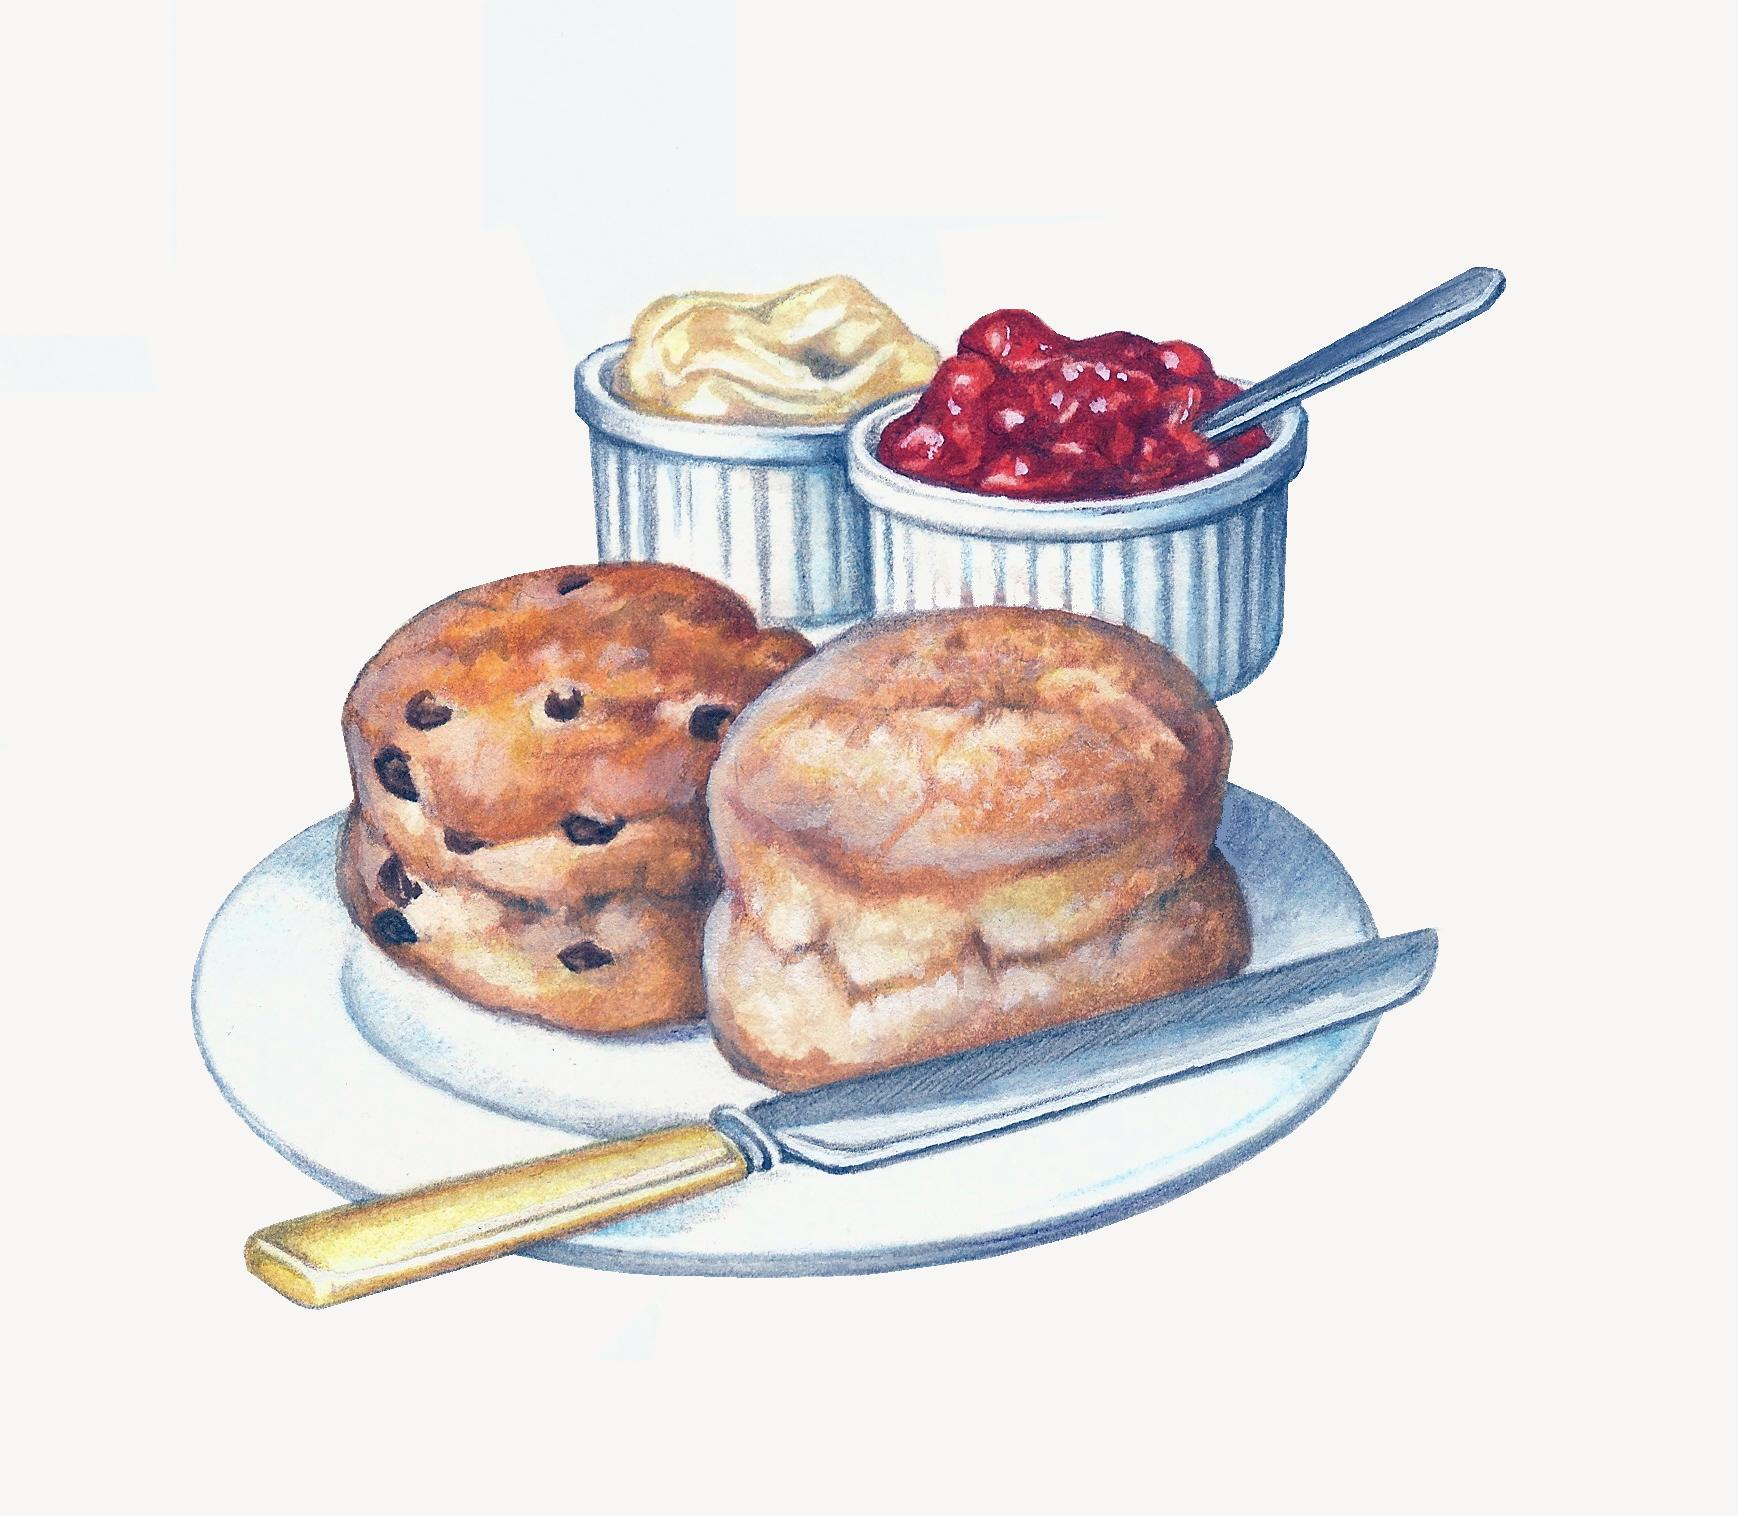 Revised Scone Artwork